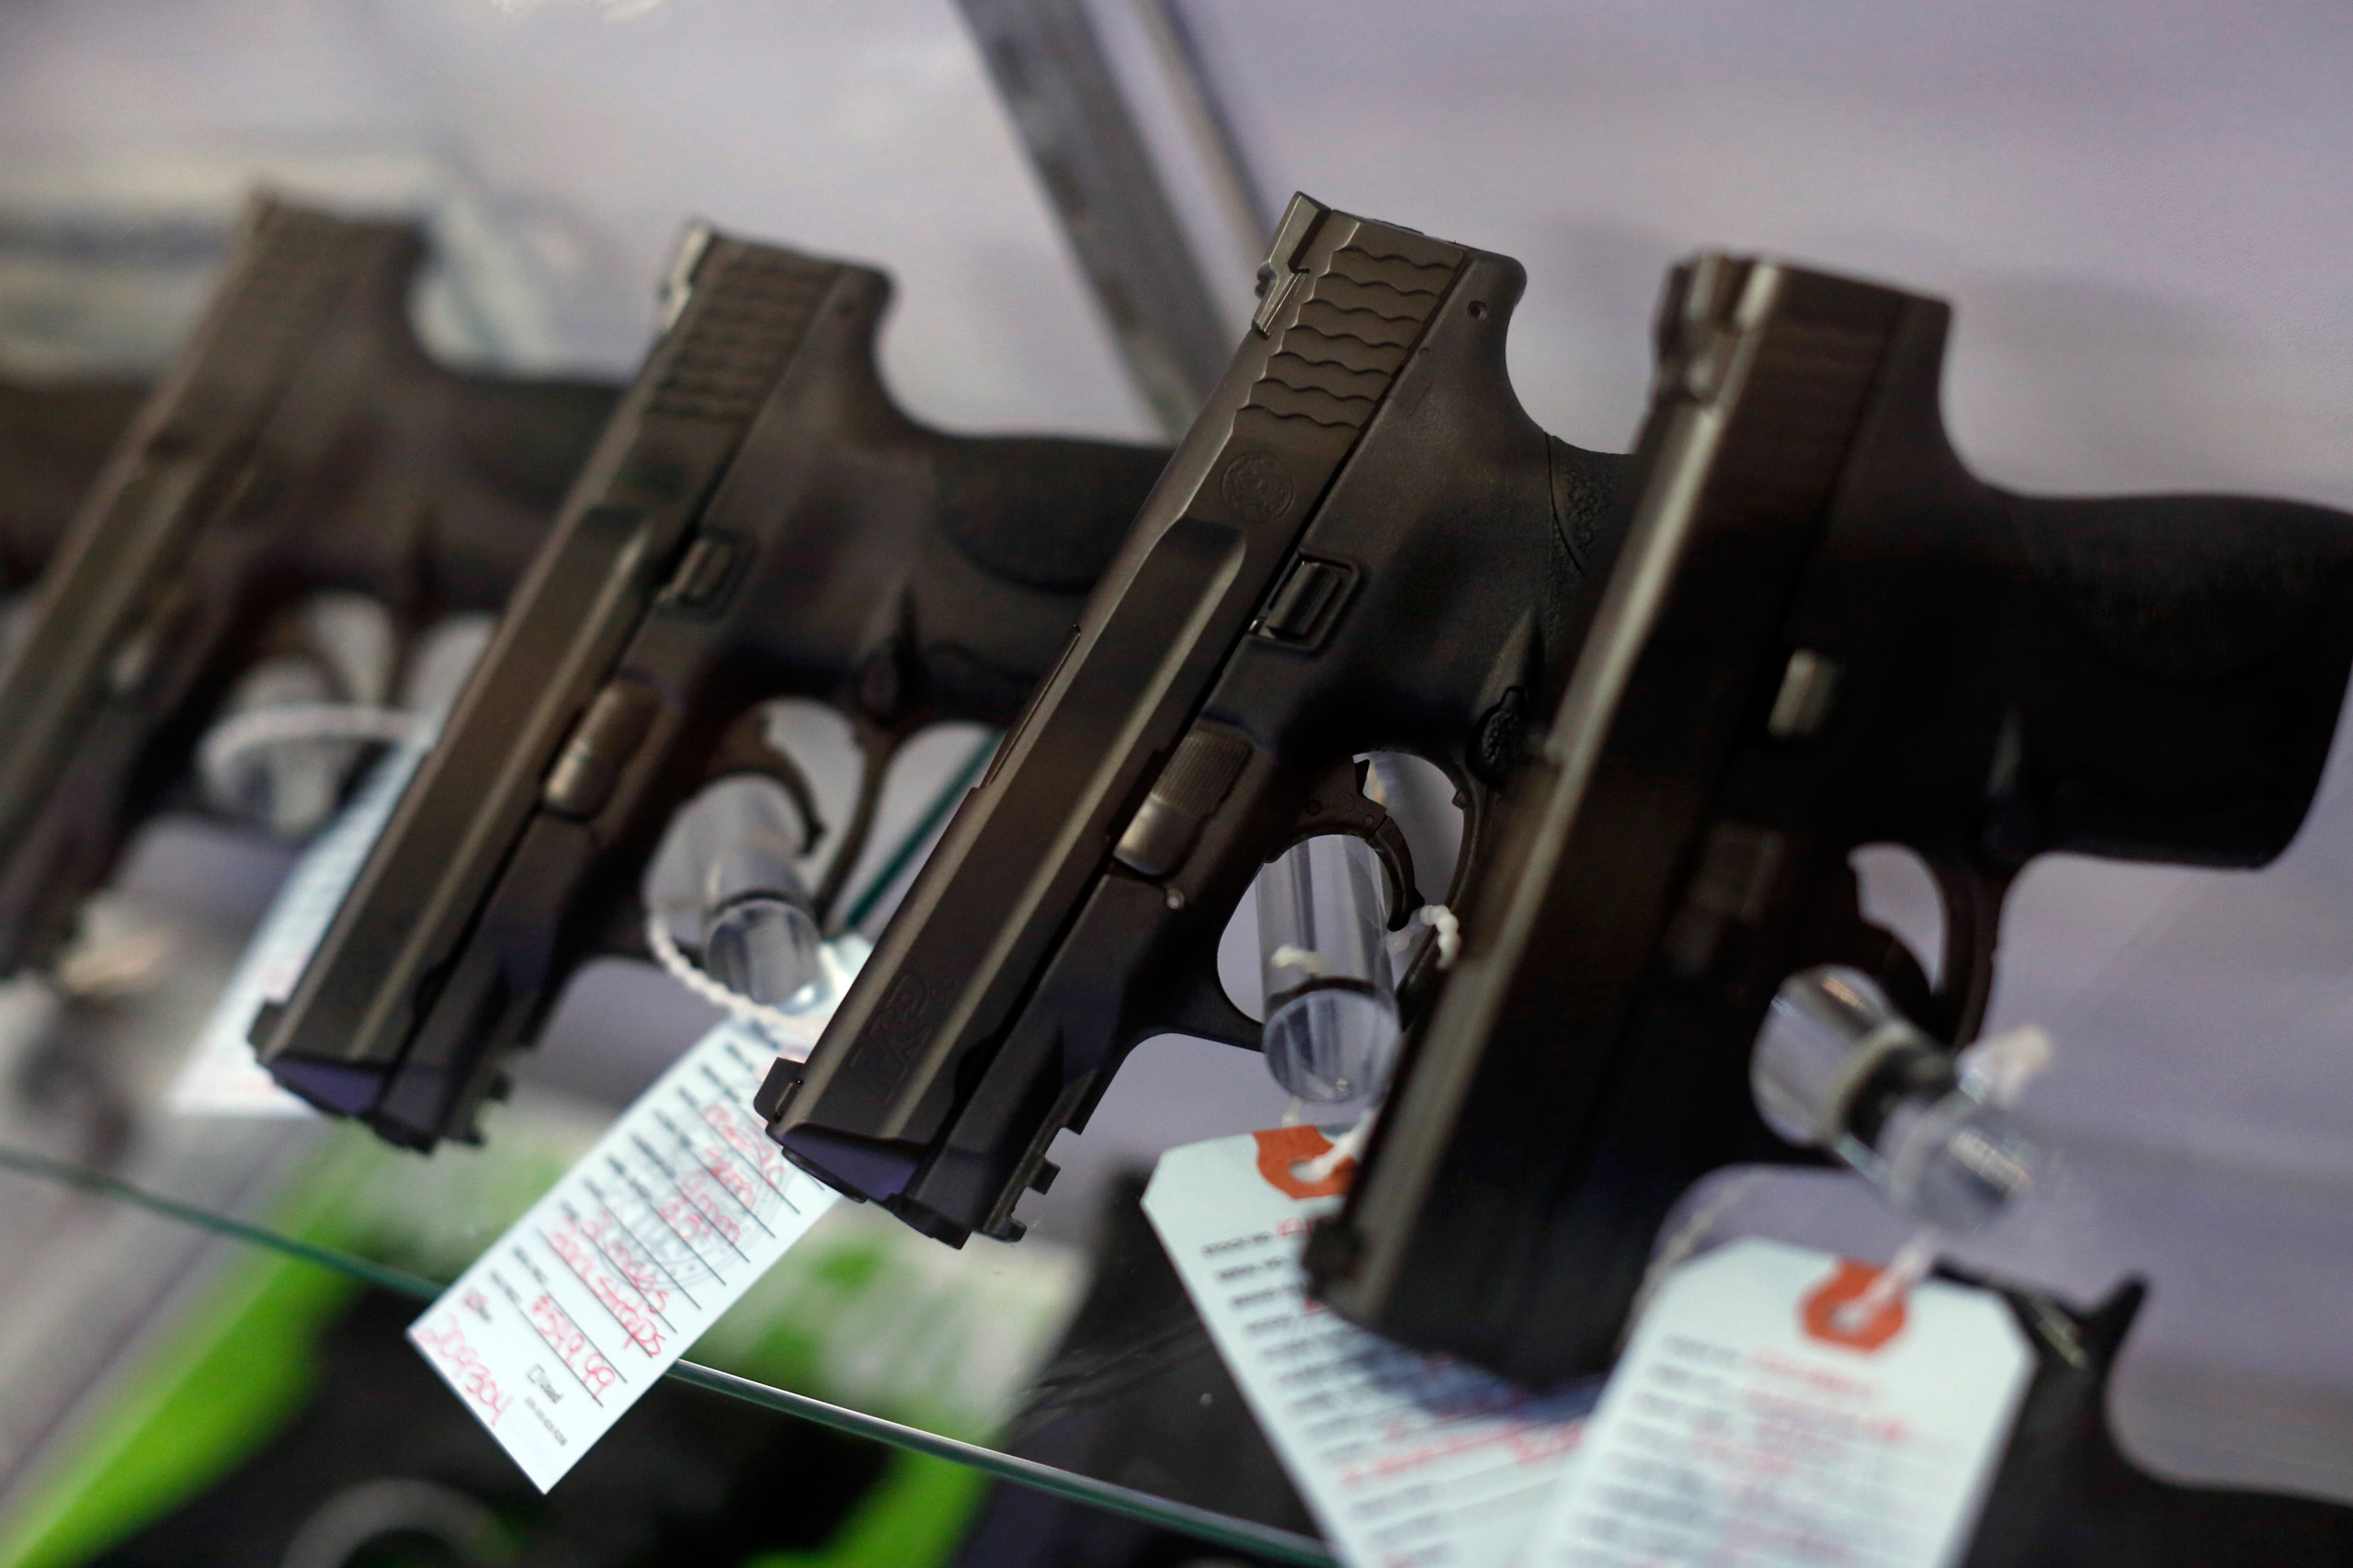 Handguns are seen for sale in a display case at Metro Shooting Supplies in Bridgeton, Miss., on Nov. 13, 2014.